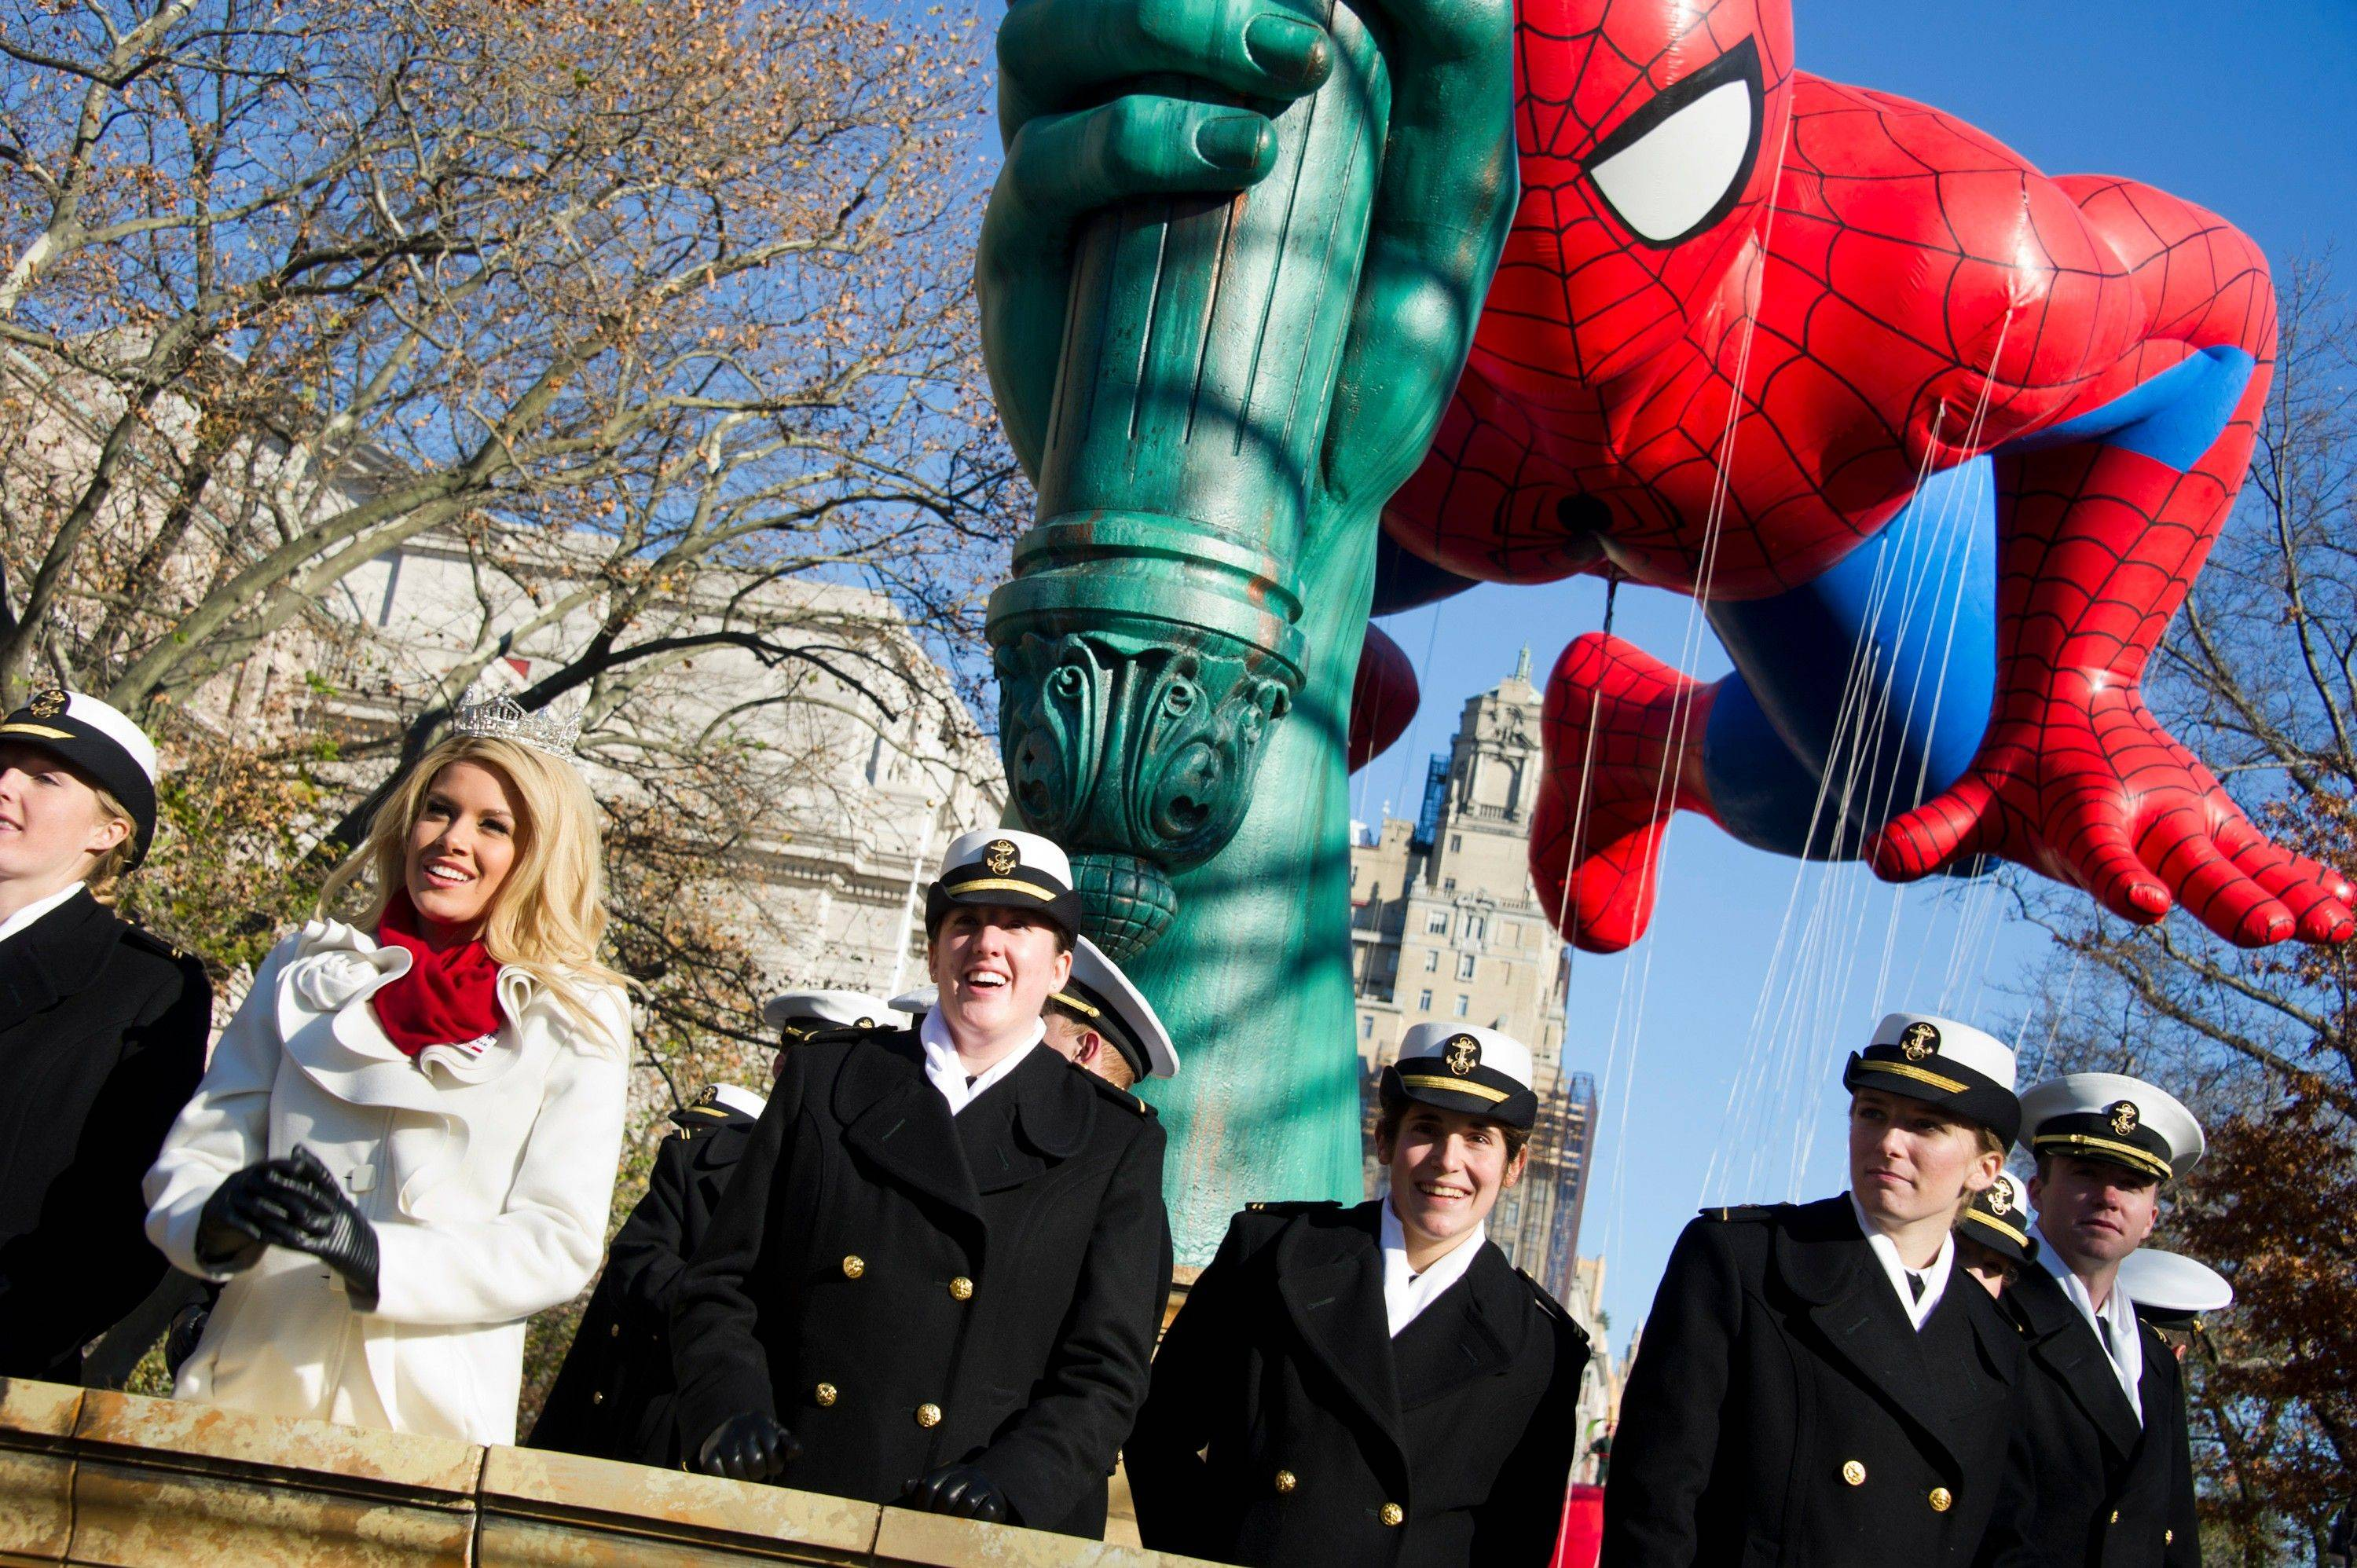 Miss America Teresa Scanlan rides a float in the Macy's Thanksgiving Day Parade in New York, Thursday, Nov. 24, 2011 A jetpack-wearing monkey and a freakish creation from filmmaker Tim Burton are two of the big new balloons that will make their inaugural appearances in front of millions of people at this year's parade.